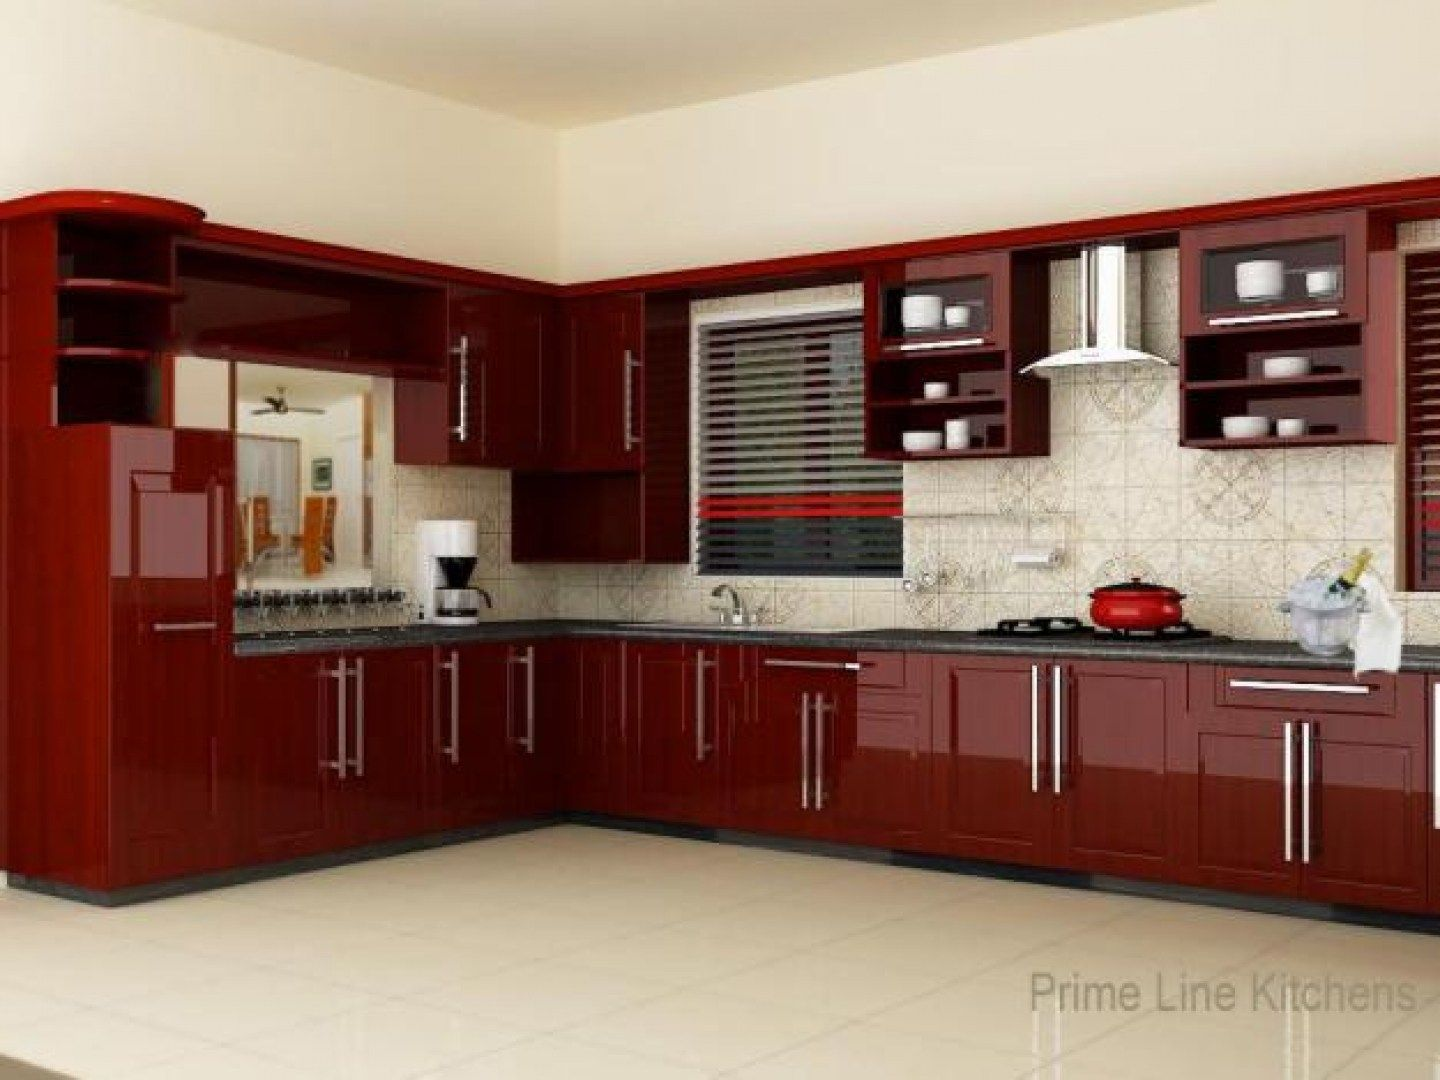 Kitchen design ideas kitchen woodwork designs hyderabad for Kitchen cabinets and design